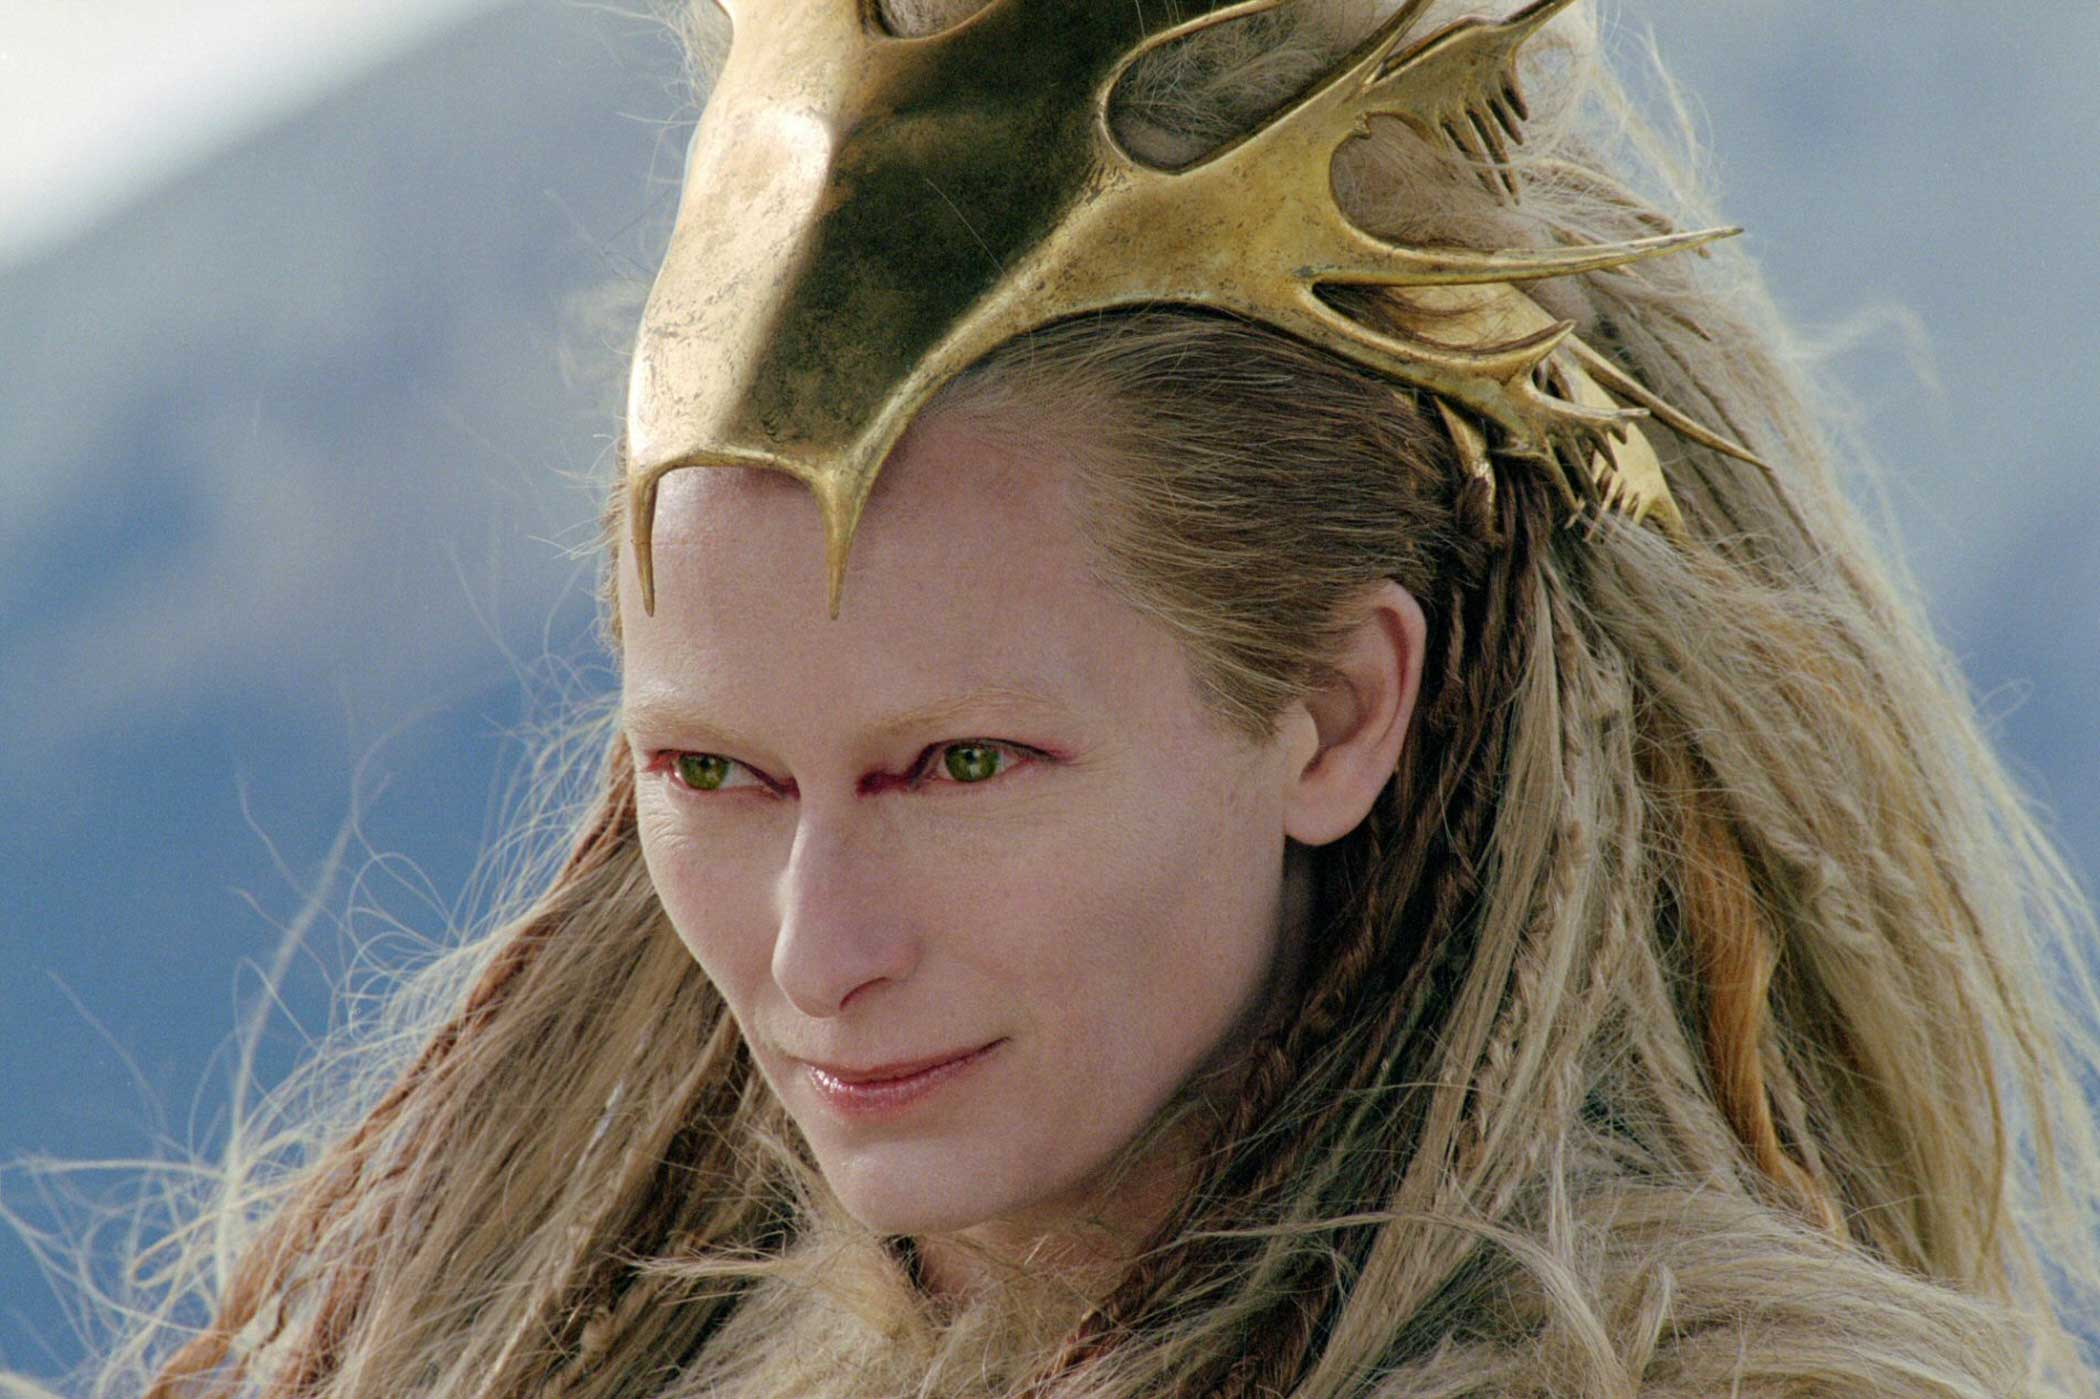 Tilda Swinton as Jadis, the White Witch, in The Chronicles of Narnia: The Lion, the Witch and the Wardrobe in 2005.